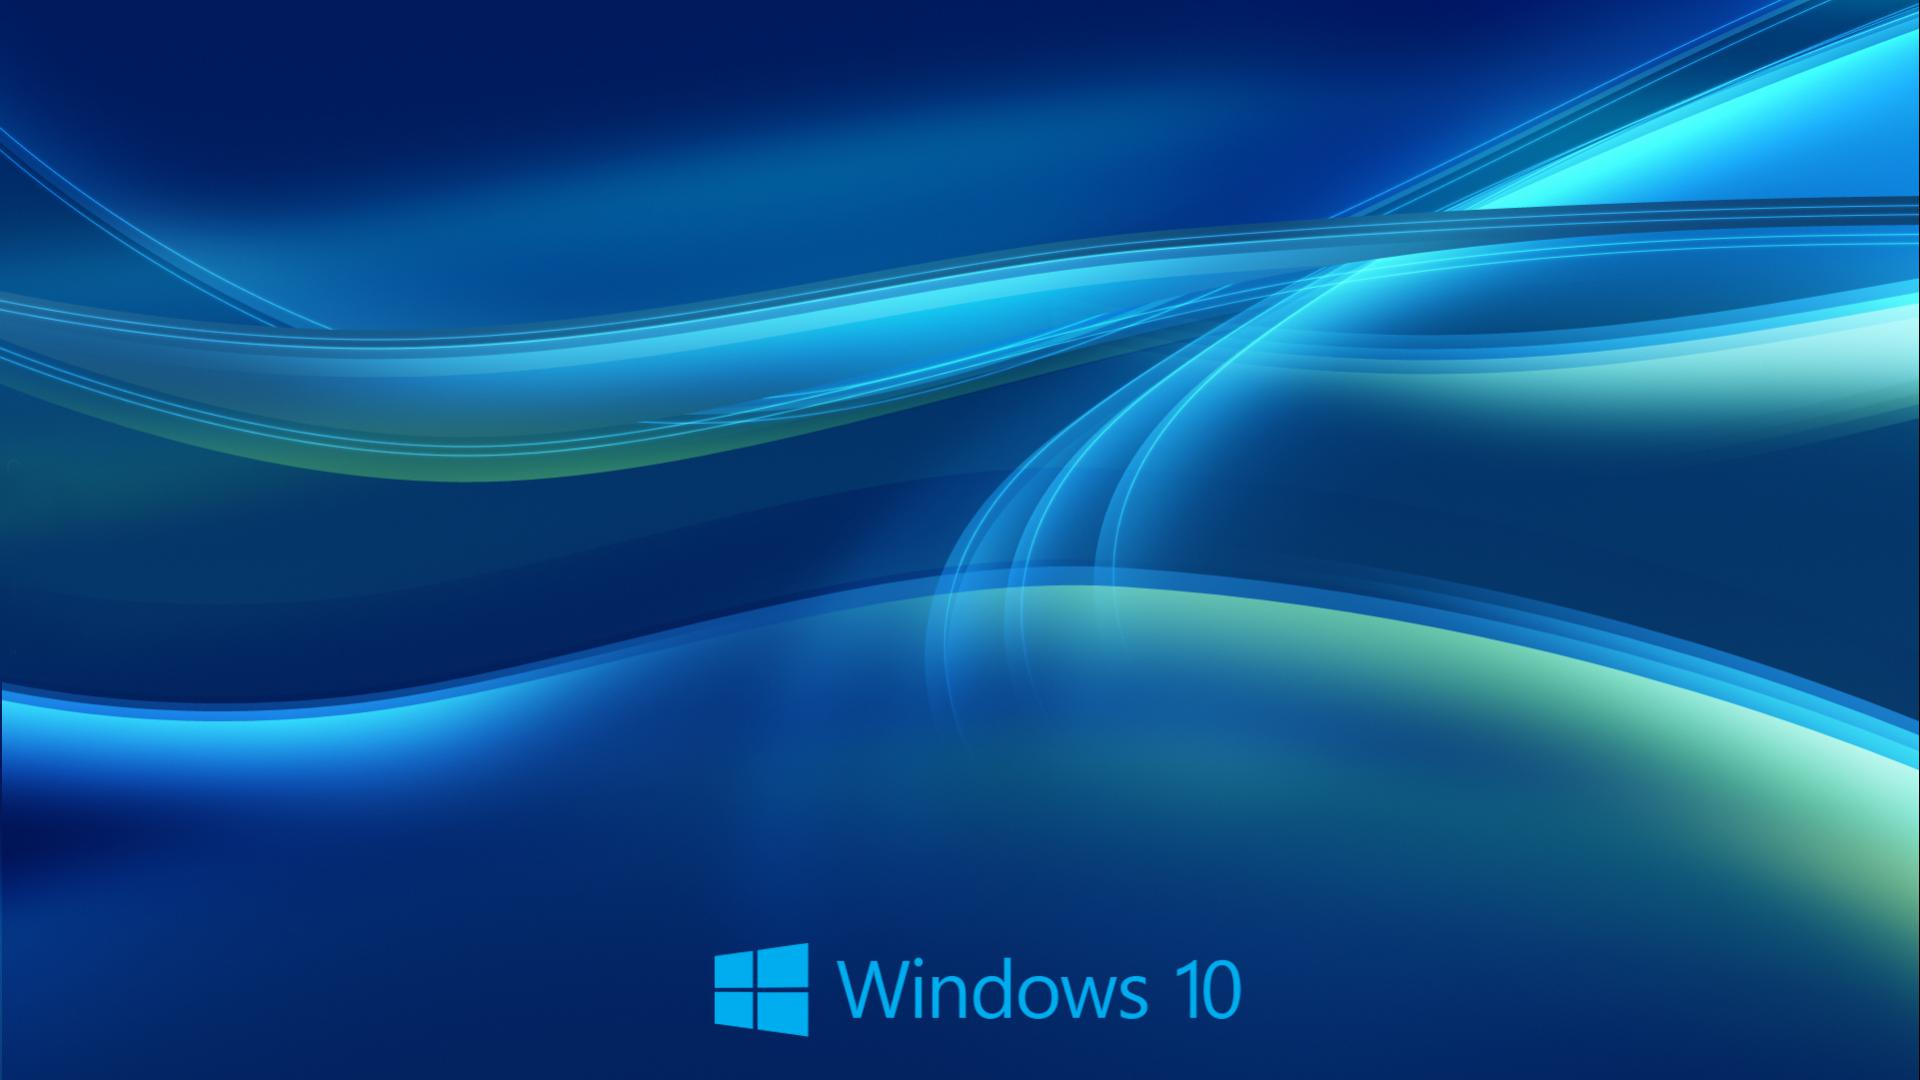 46 Windows 10 Logo Hd Wallpaper On Wallpapersafari